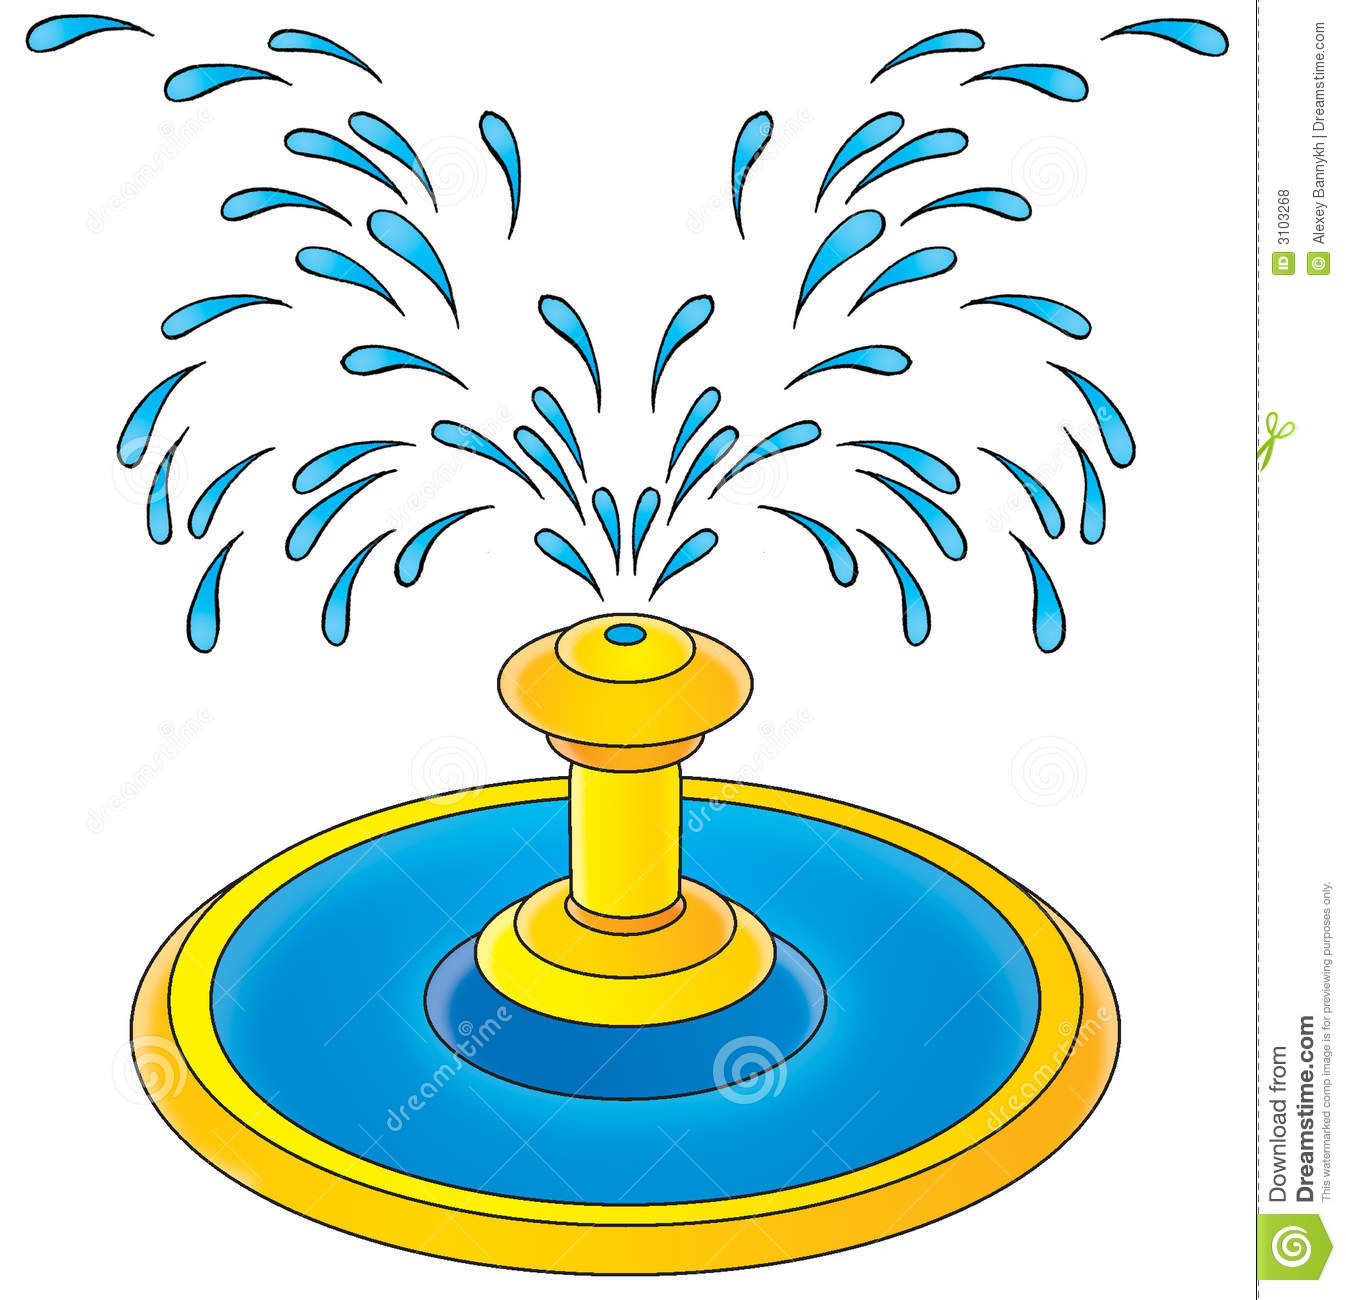 Clip Art Fountain Clipart water fountain clipart kid isolated clip art children s book illustration for yours design